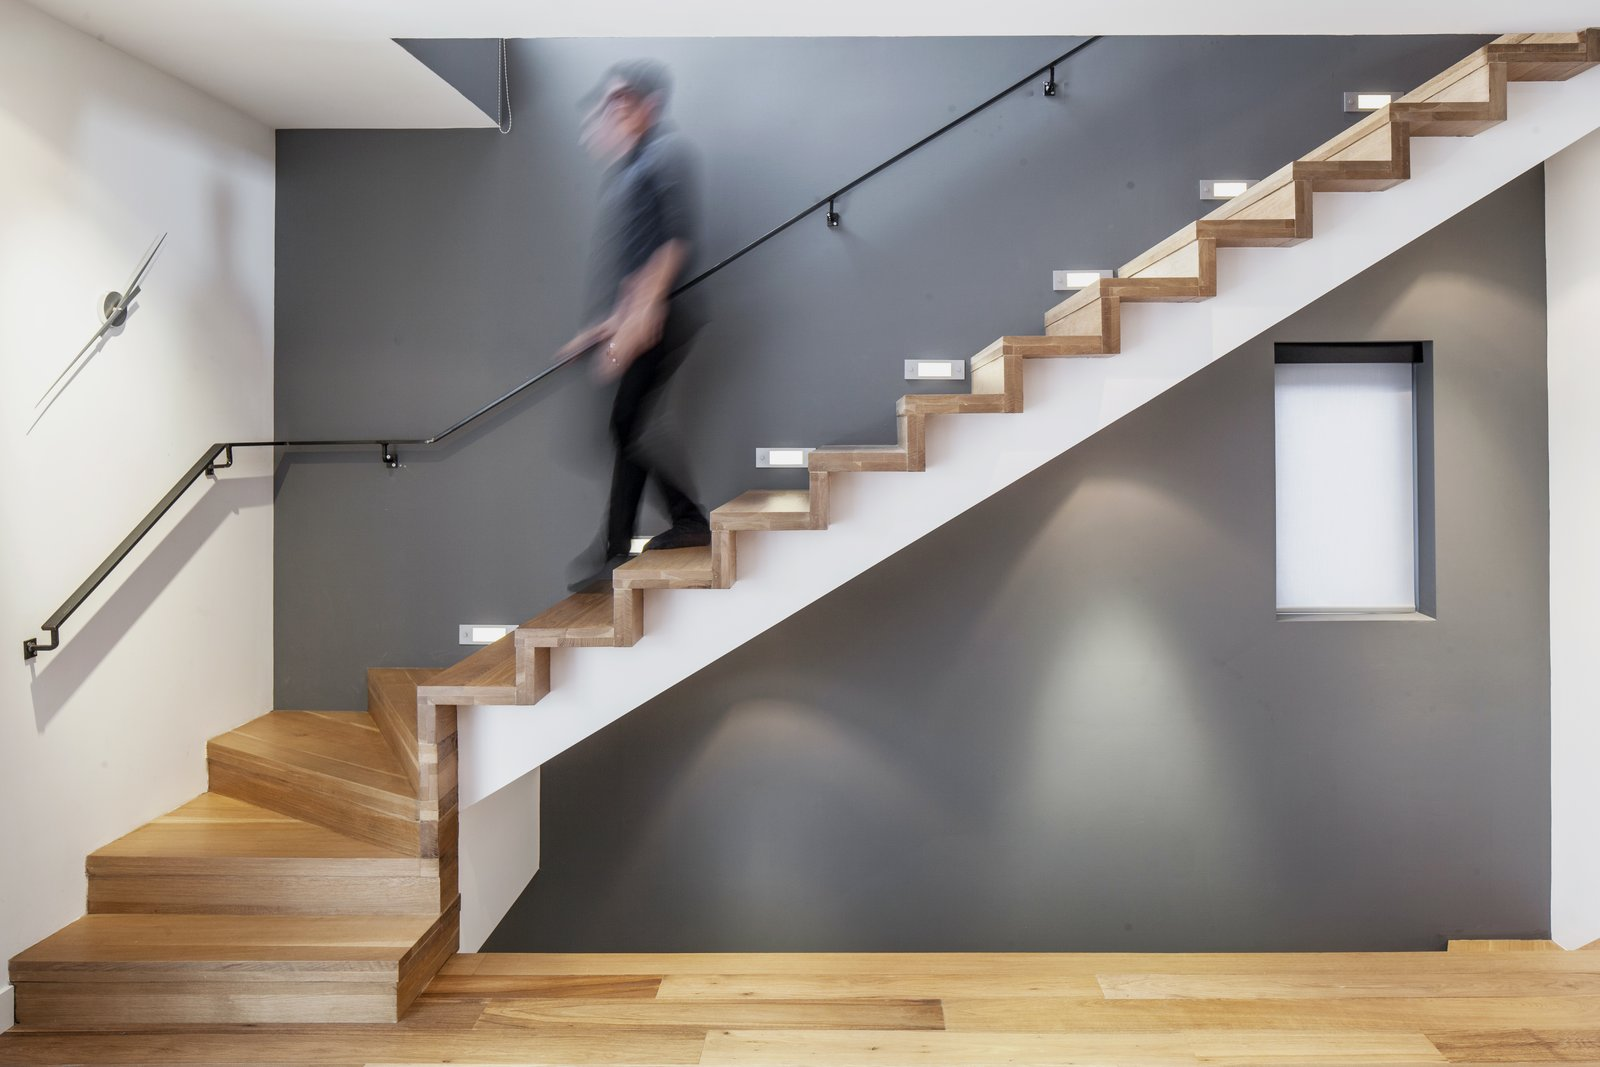 Behind the living room, a minimalist staircase leads to the upper level's bedroom and family room. White oak flooring unites the staircase and the rest of the living spaces.  A Look at Oak in 6 Modern Homes by Zachary Edelson from A Spacious Toronto Triplex Responds to Rising Urban Density